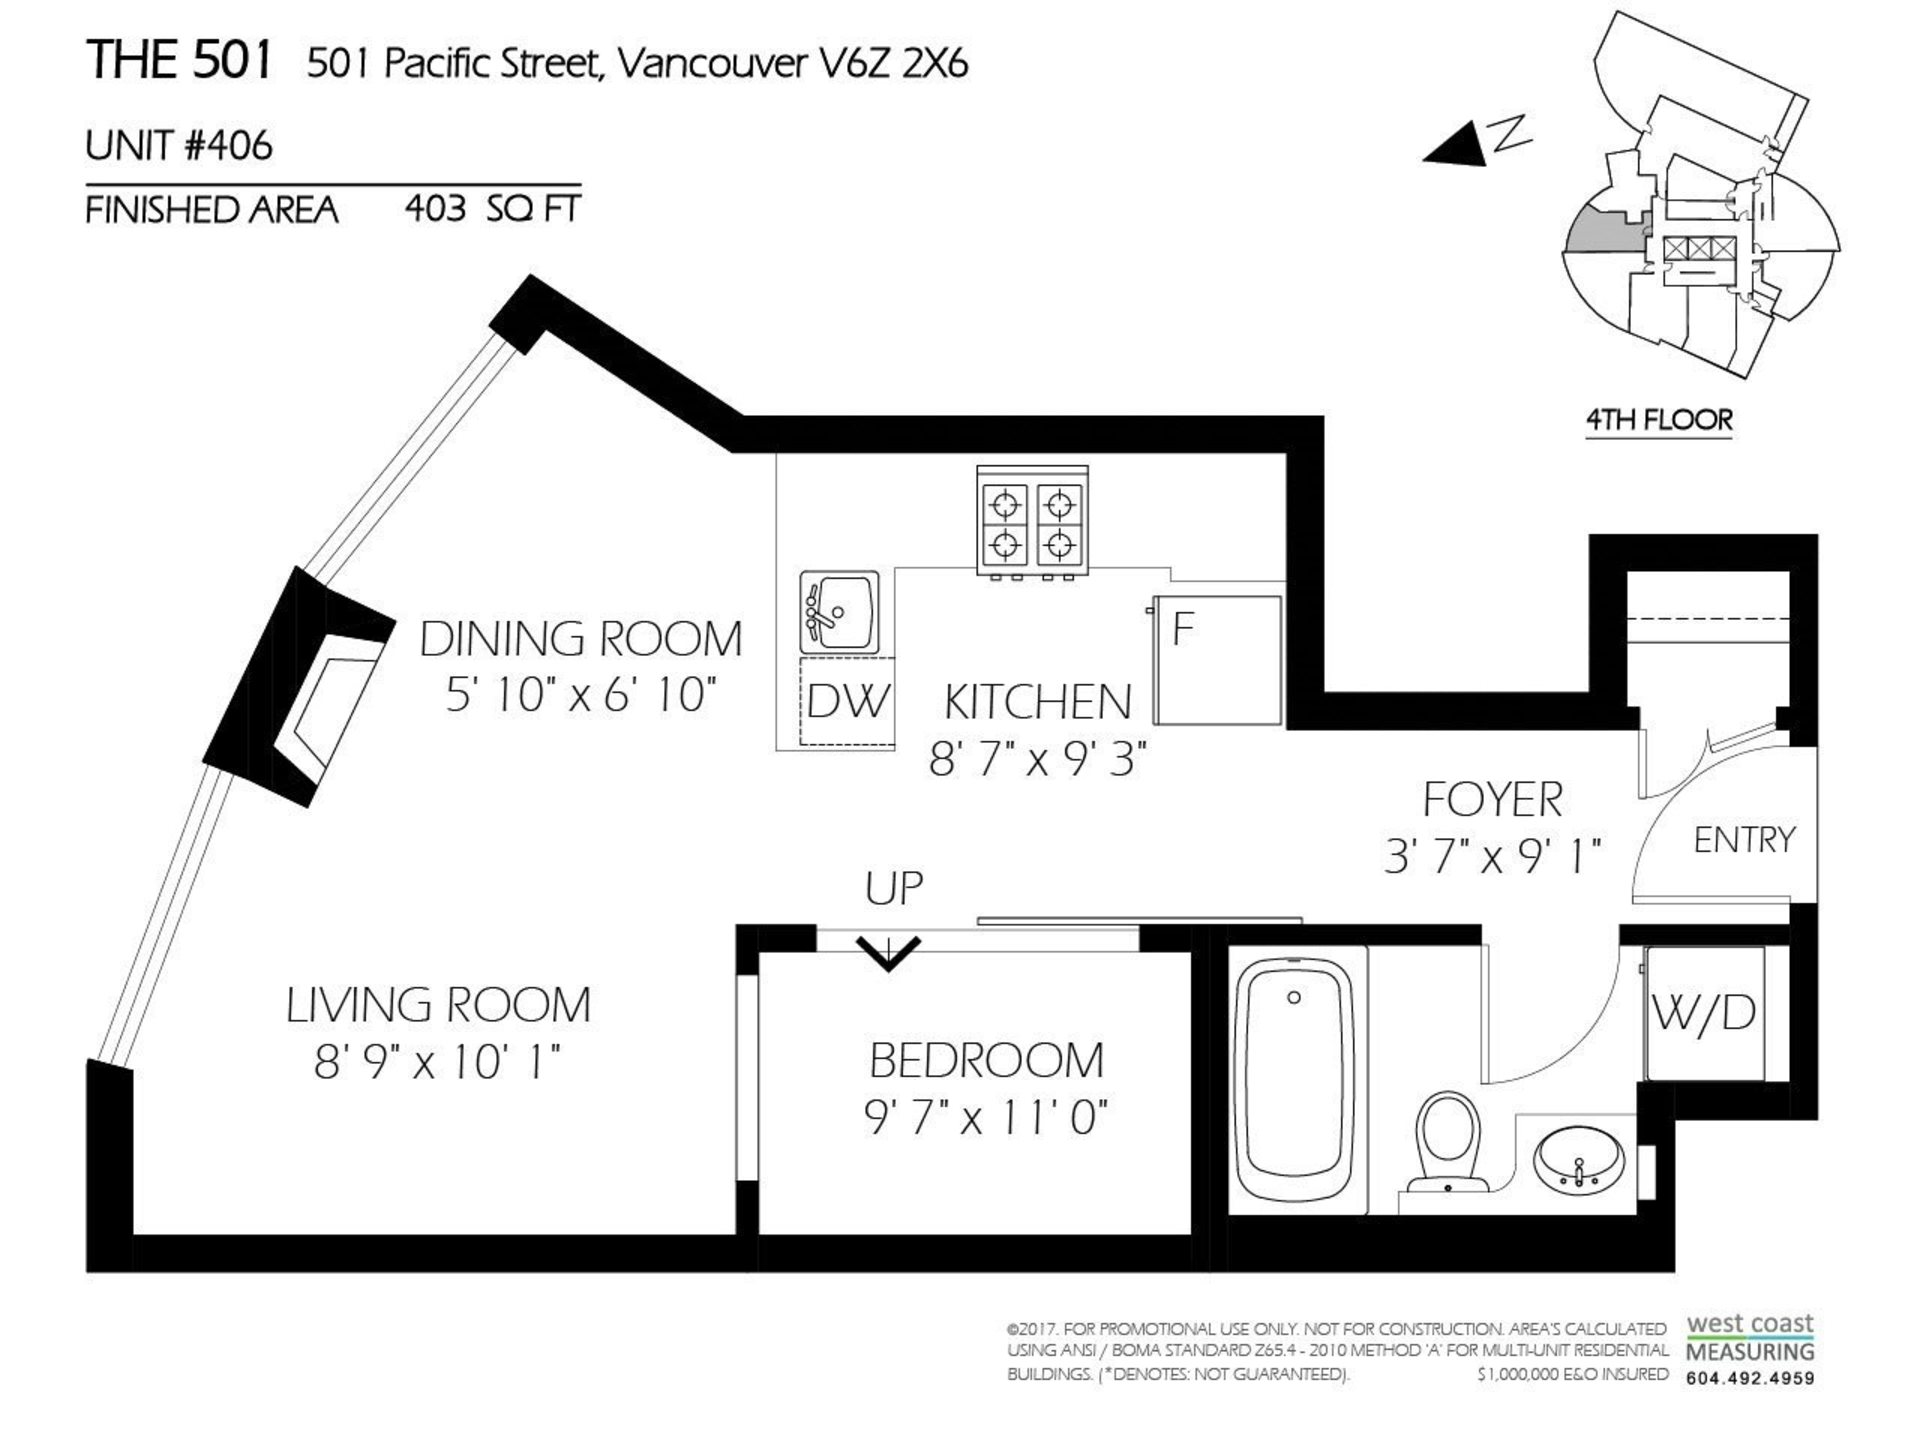 501-pacific-street-yaletown-vancouver-west-20 at 406 - 501 Pacific Street, Yaletown, Vancouver West